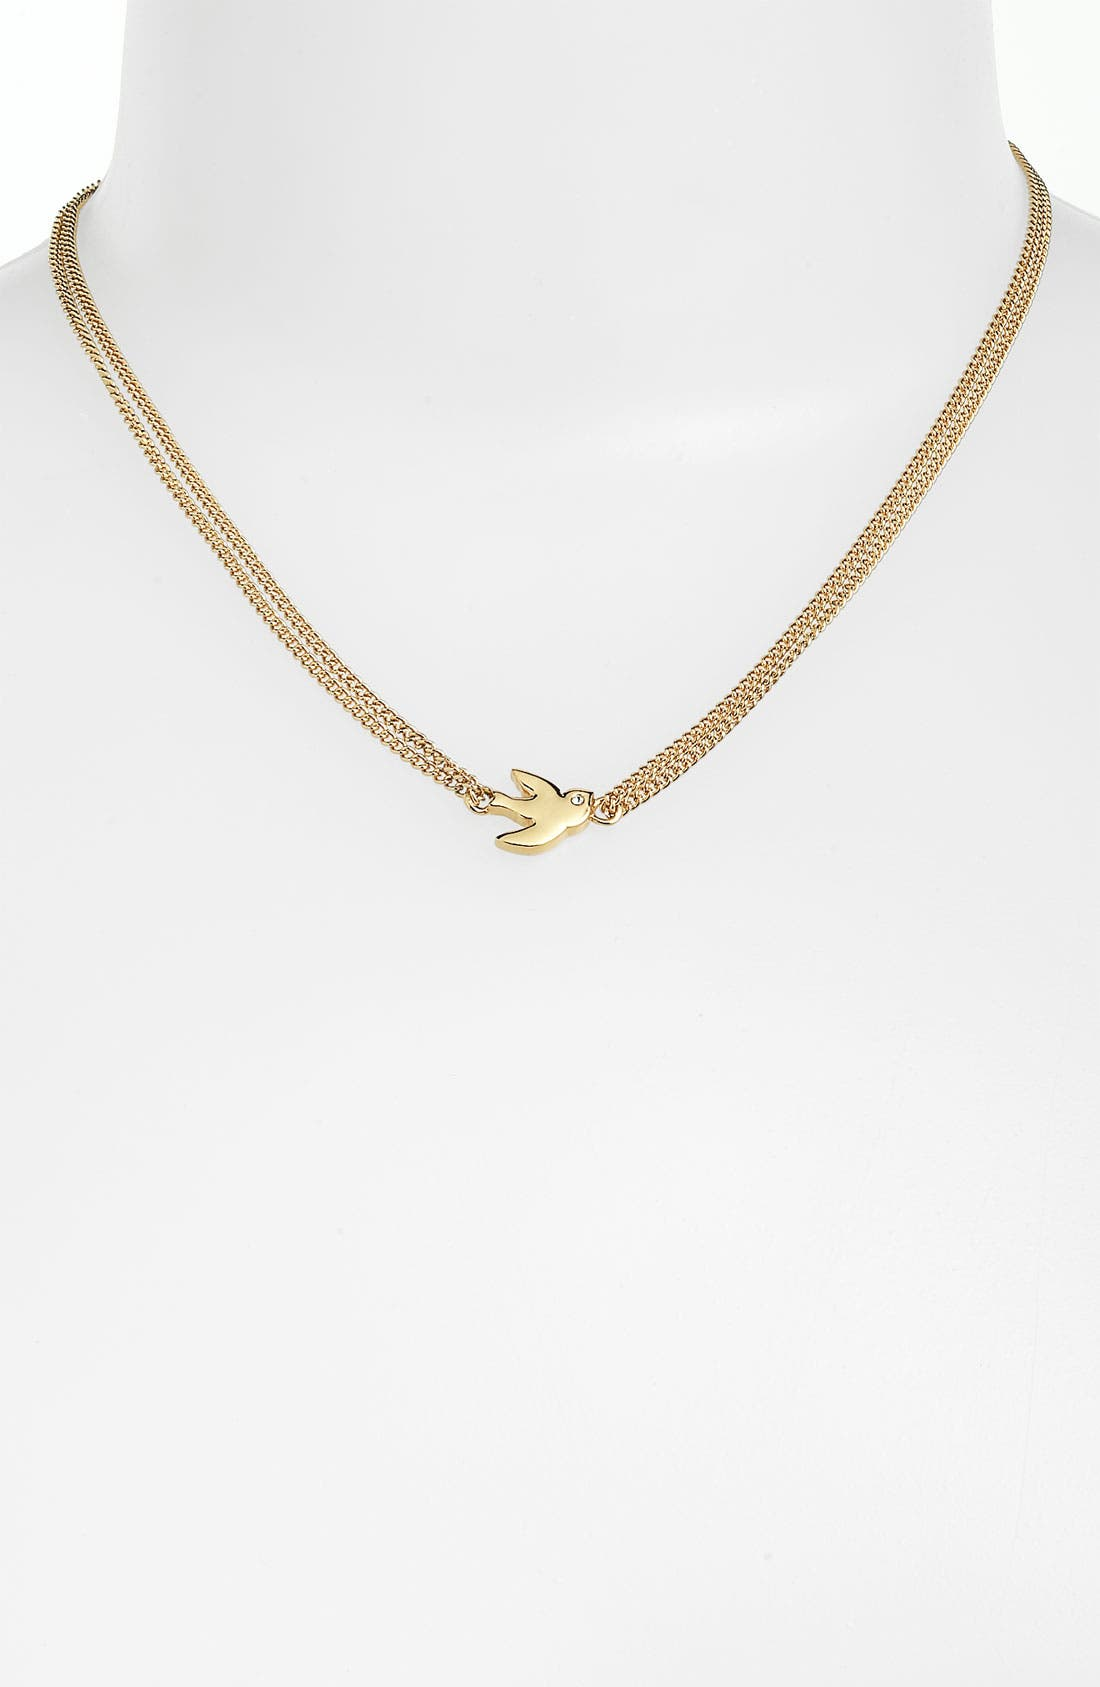 Alternate Image 1 Selected - MARC BY MARC JACOBS 'Oiseau d'Amour' Pendant Necklace